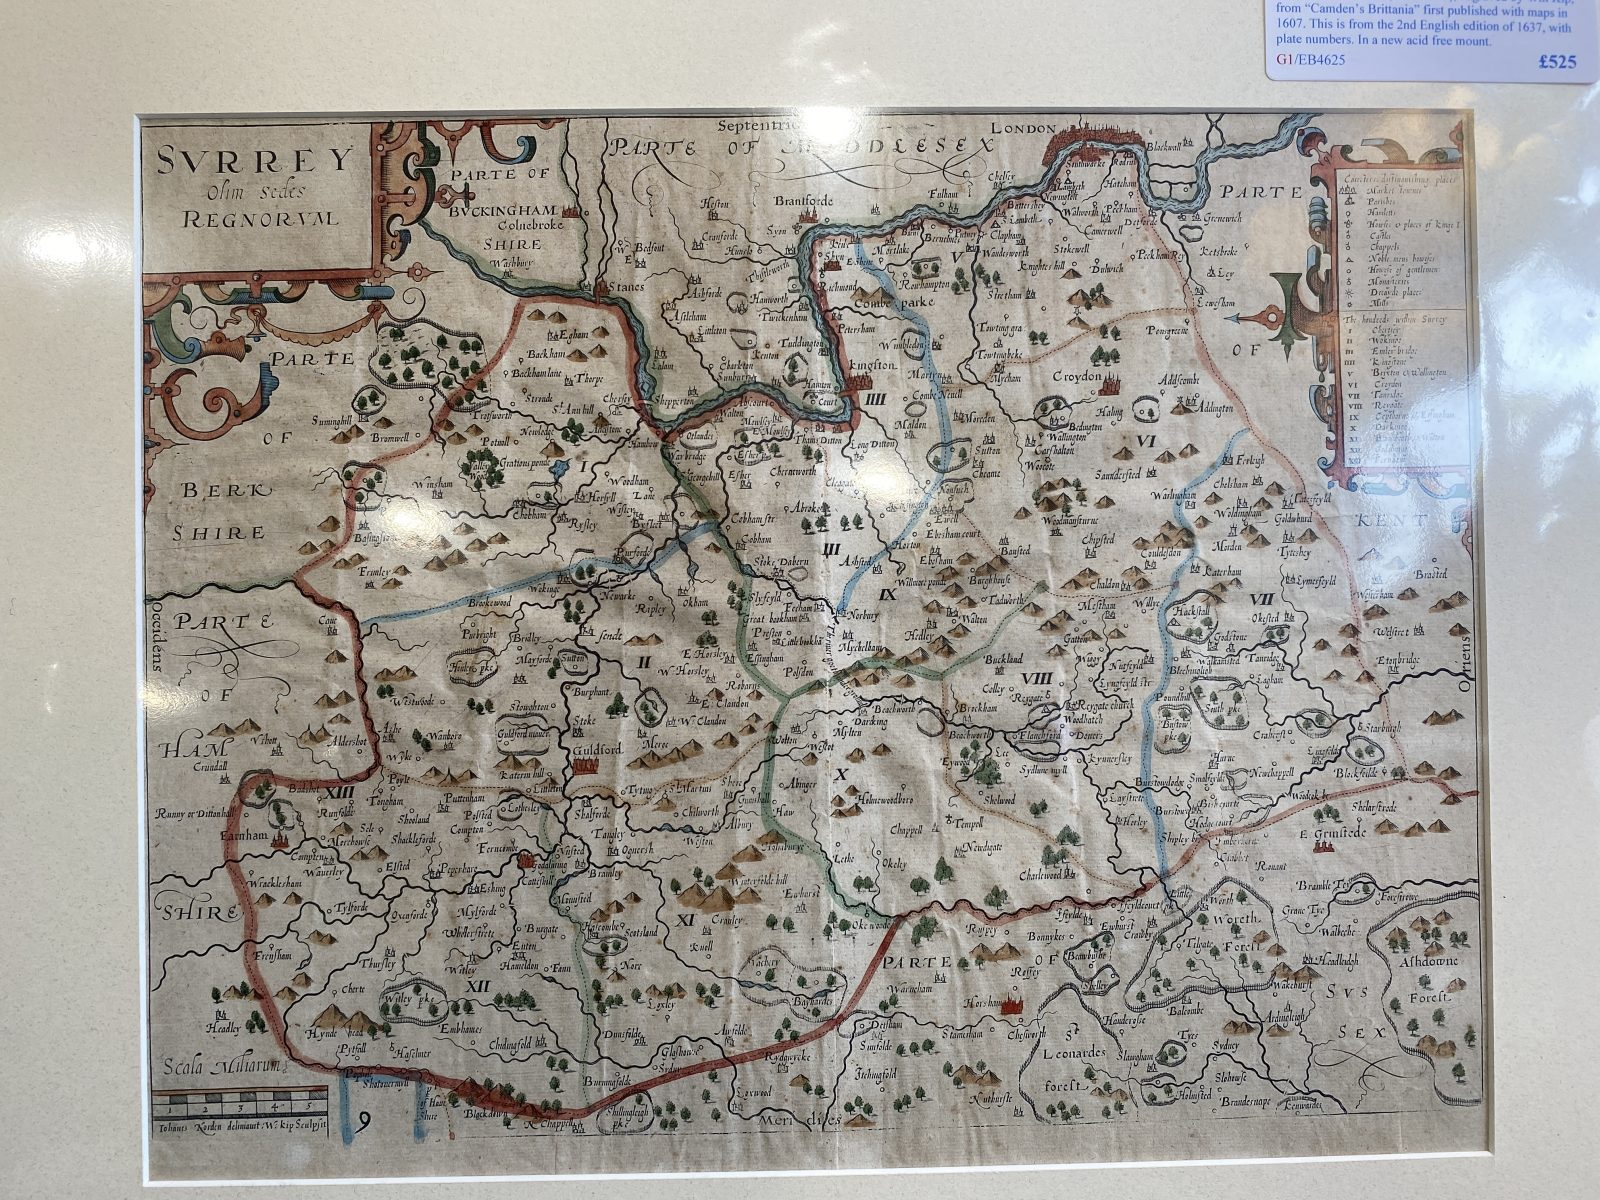 G1 - A very rare copperplate map of SURREY by John Norden (1548-1626), from Camdens Britannia, this edition from the 2nd english edition of 1637 with added plate numbers. In a new acid free mount ready for framing.  £525